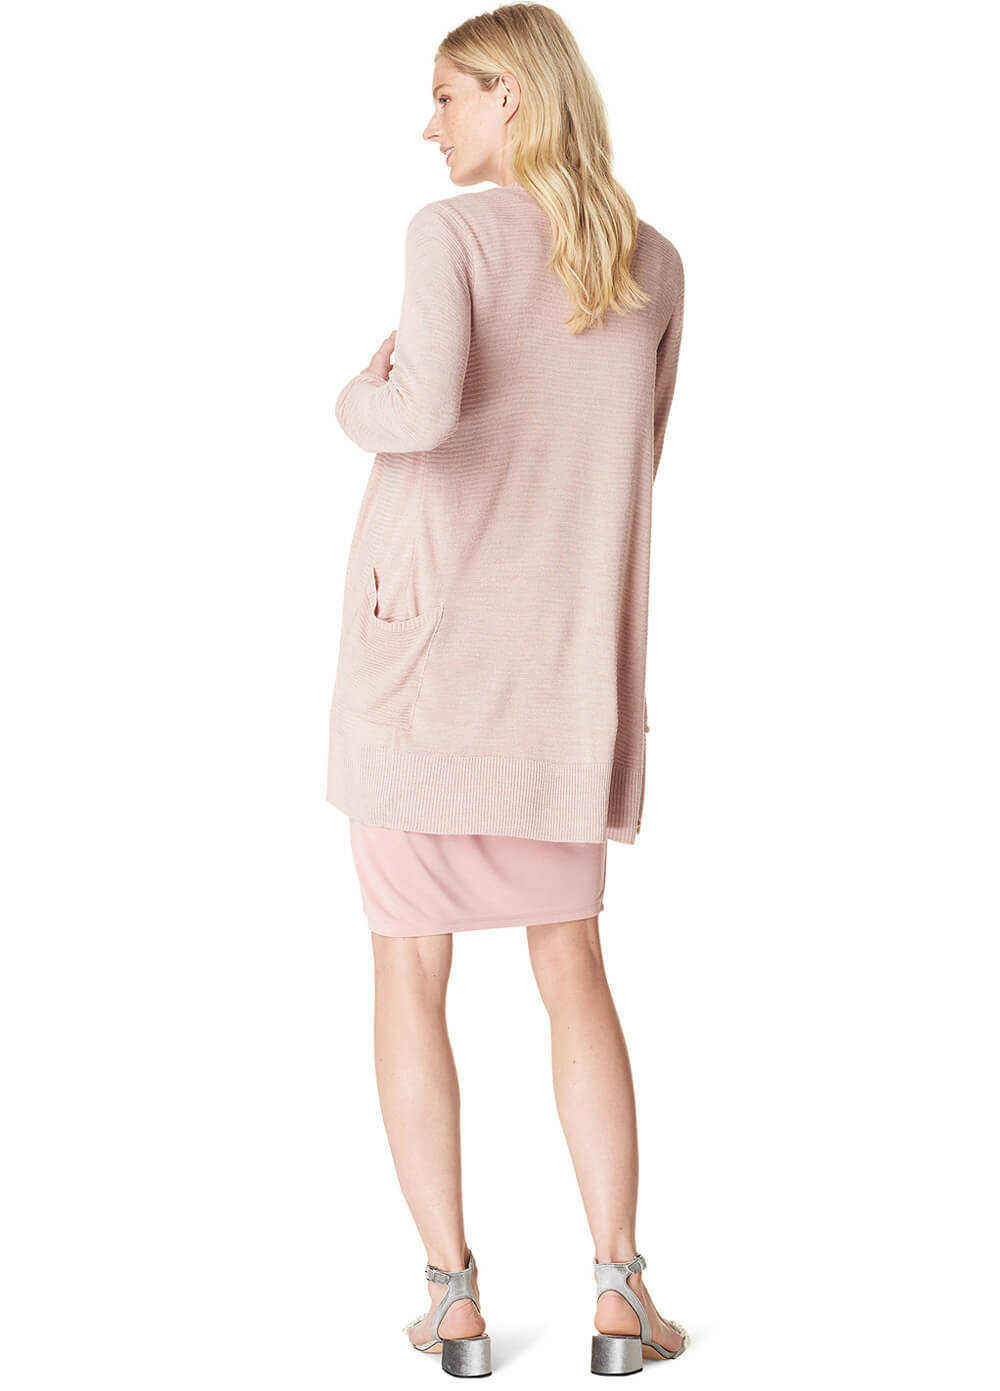 Alexis Ribbed Knit Maternity Cardigan in Blush by Noppies